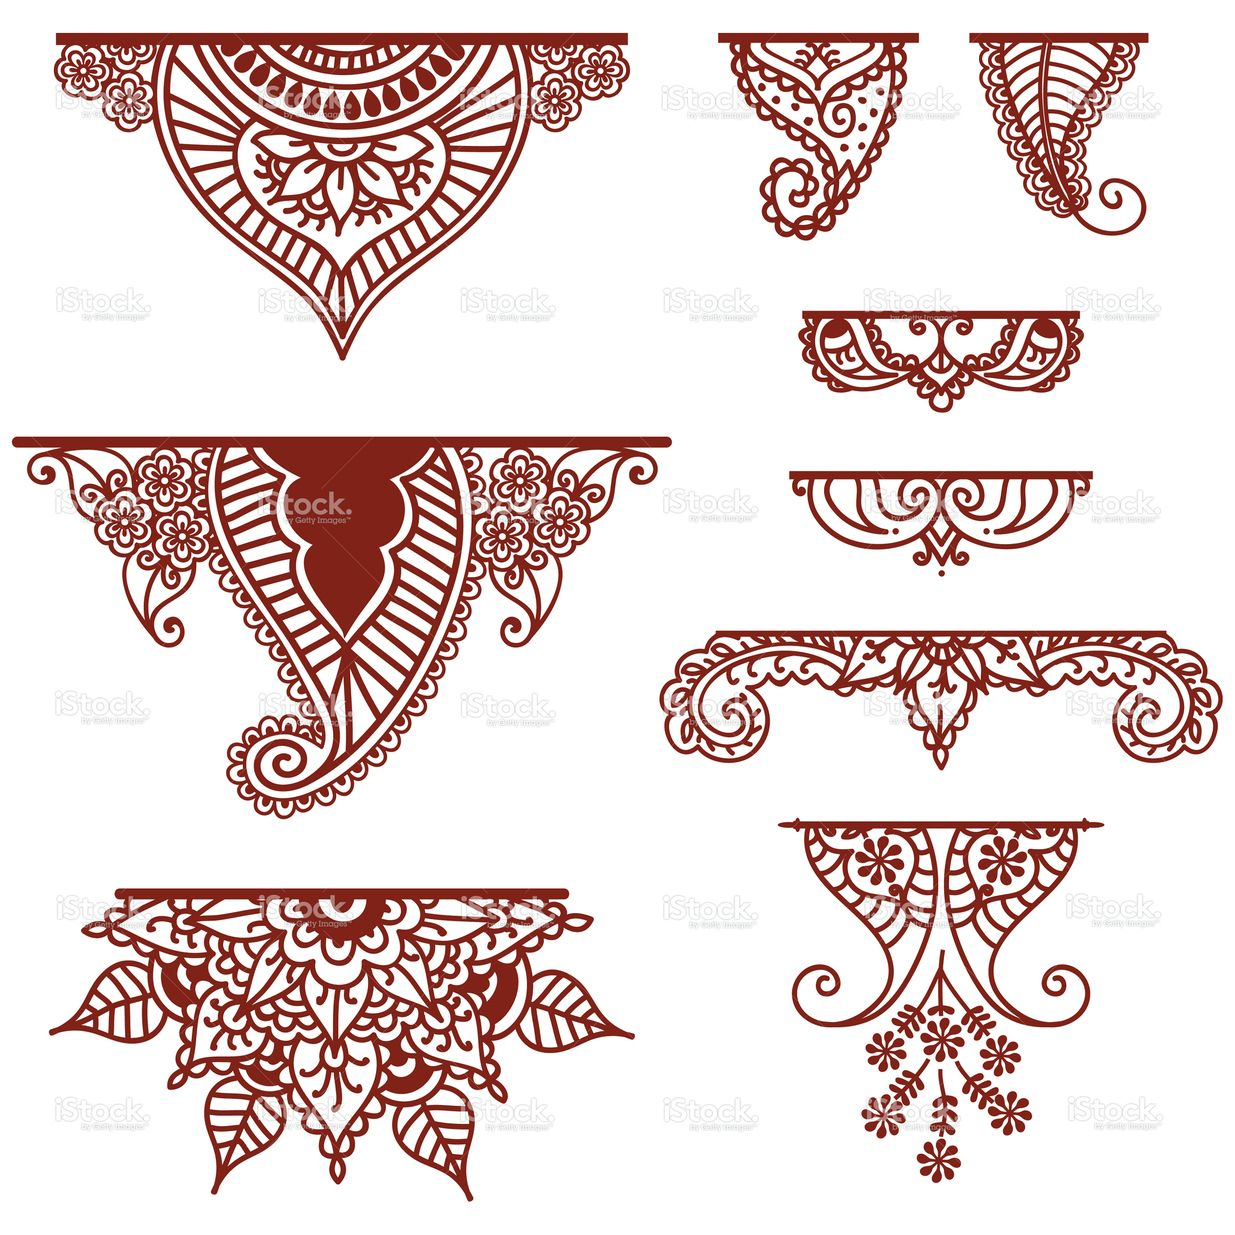 Horizontal Line Tattoo: A Collection Of Decorative Ornaments